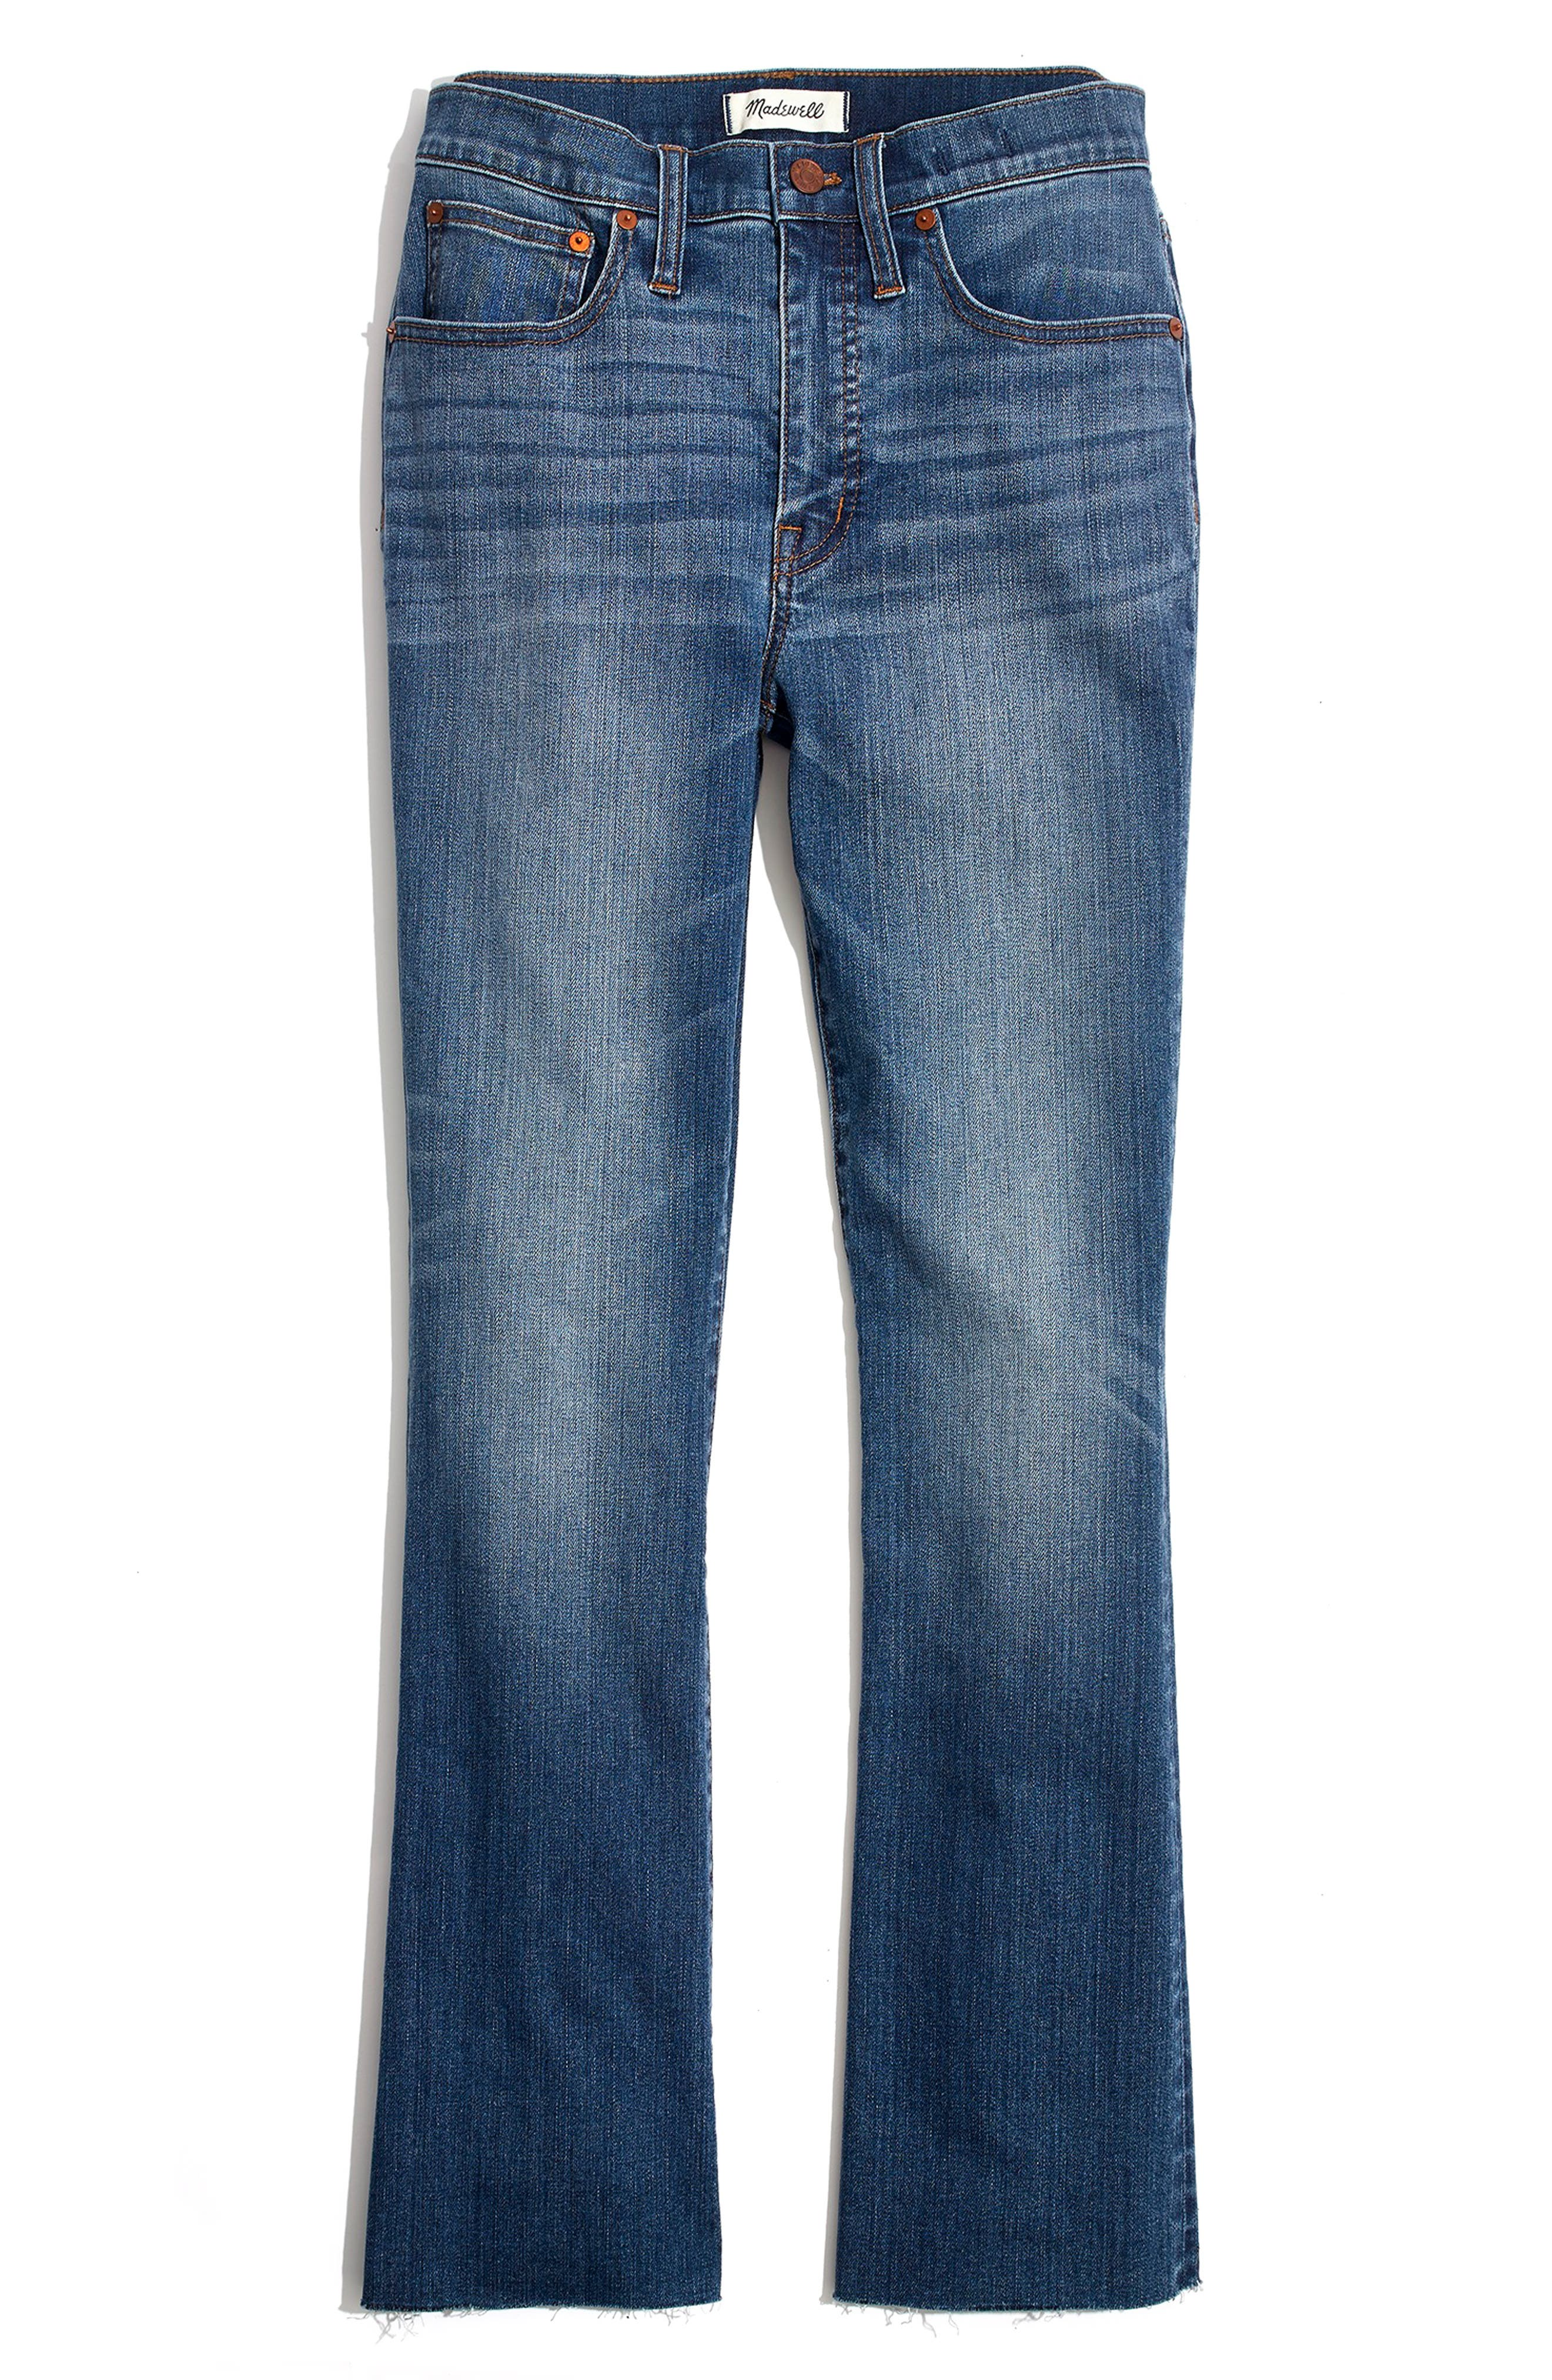 MADEWELL Cali Back Seam Demi Boot Jeans, Main, color, 400